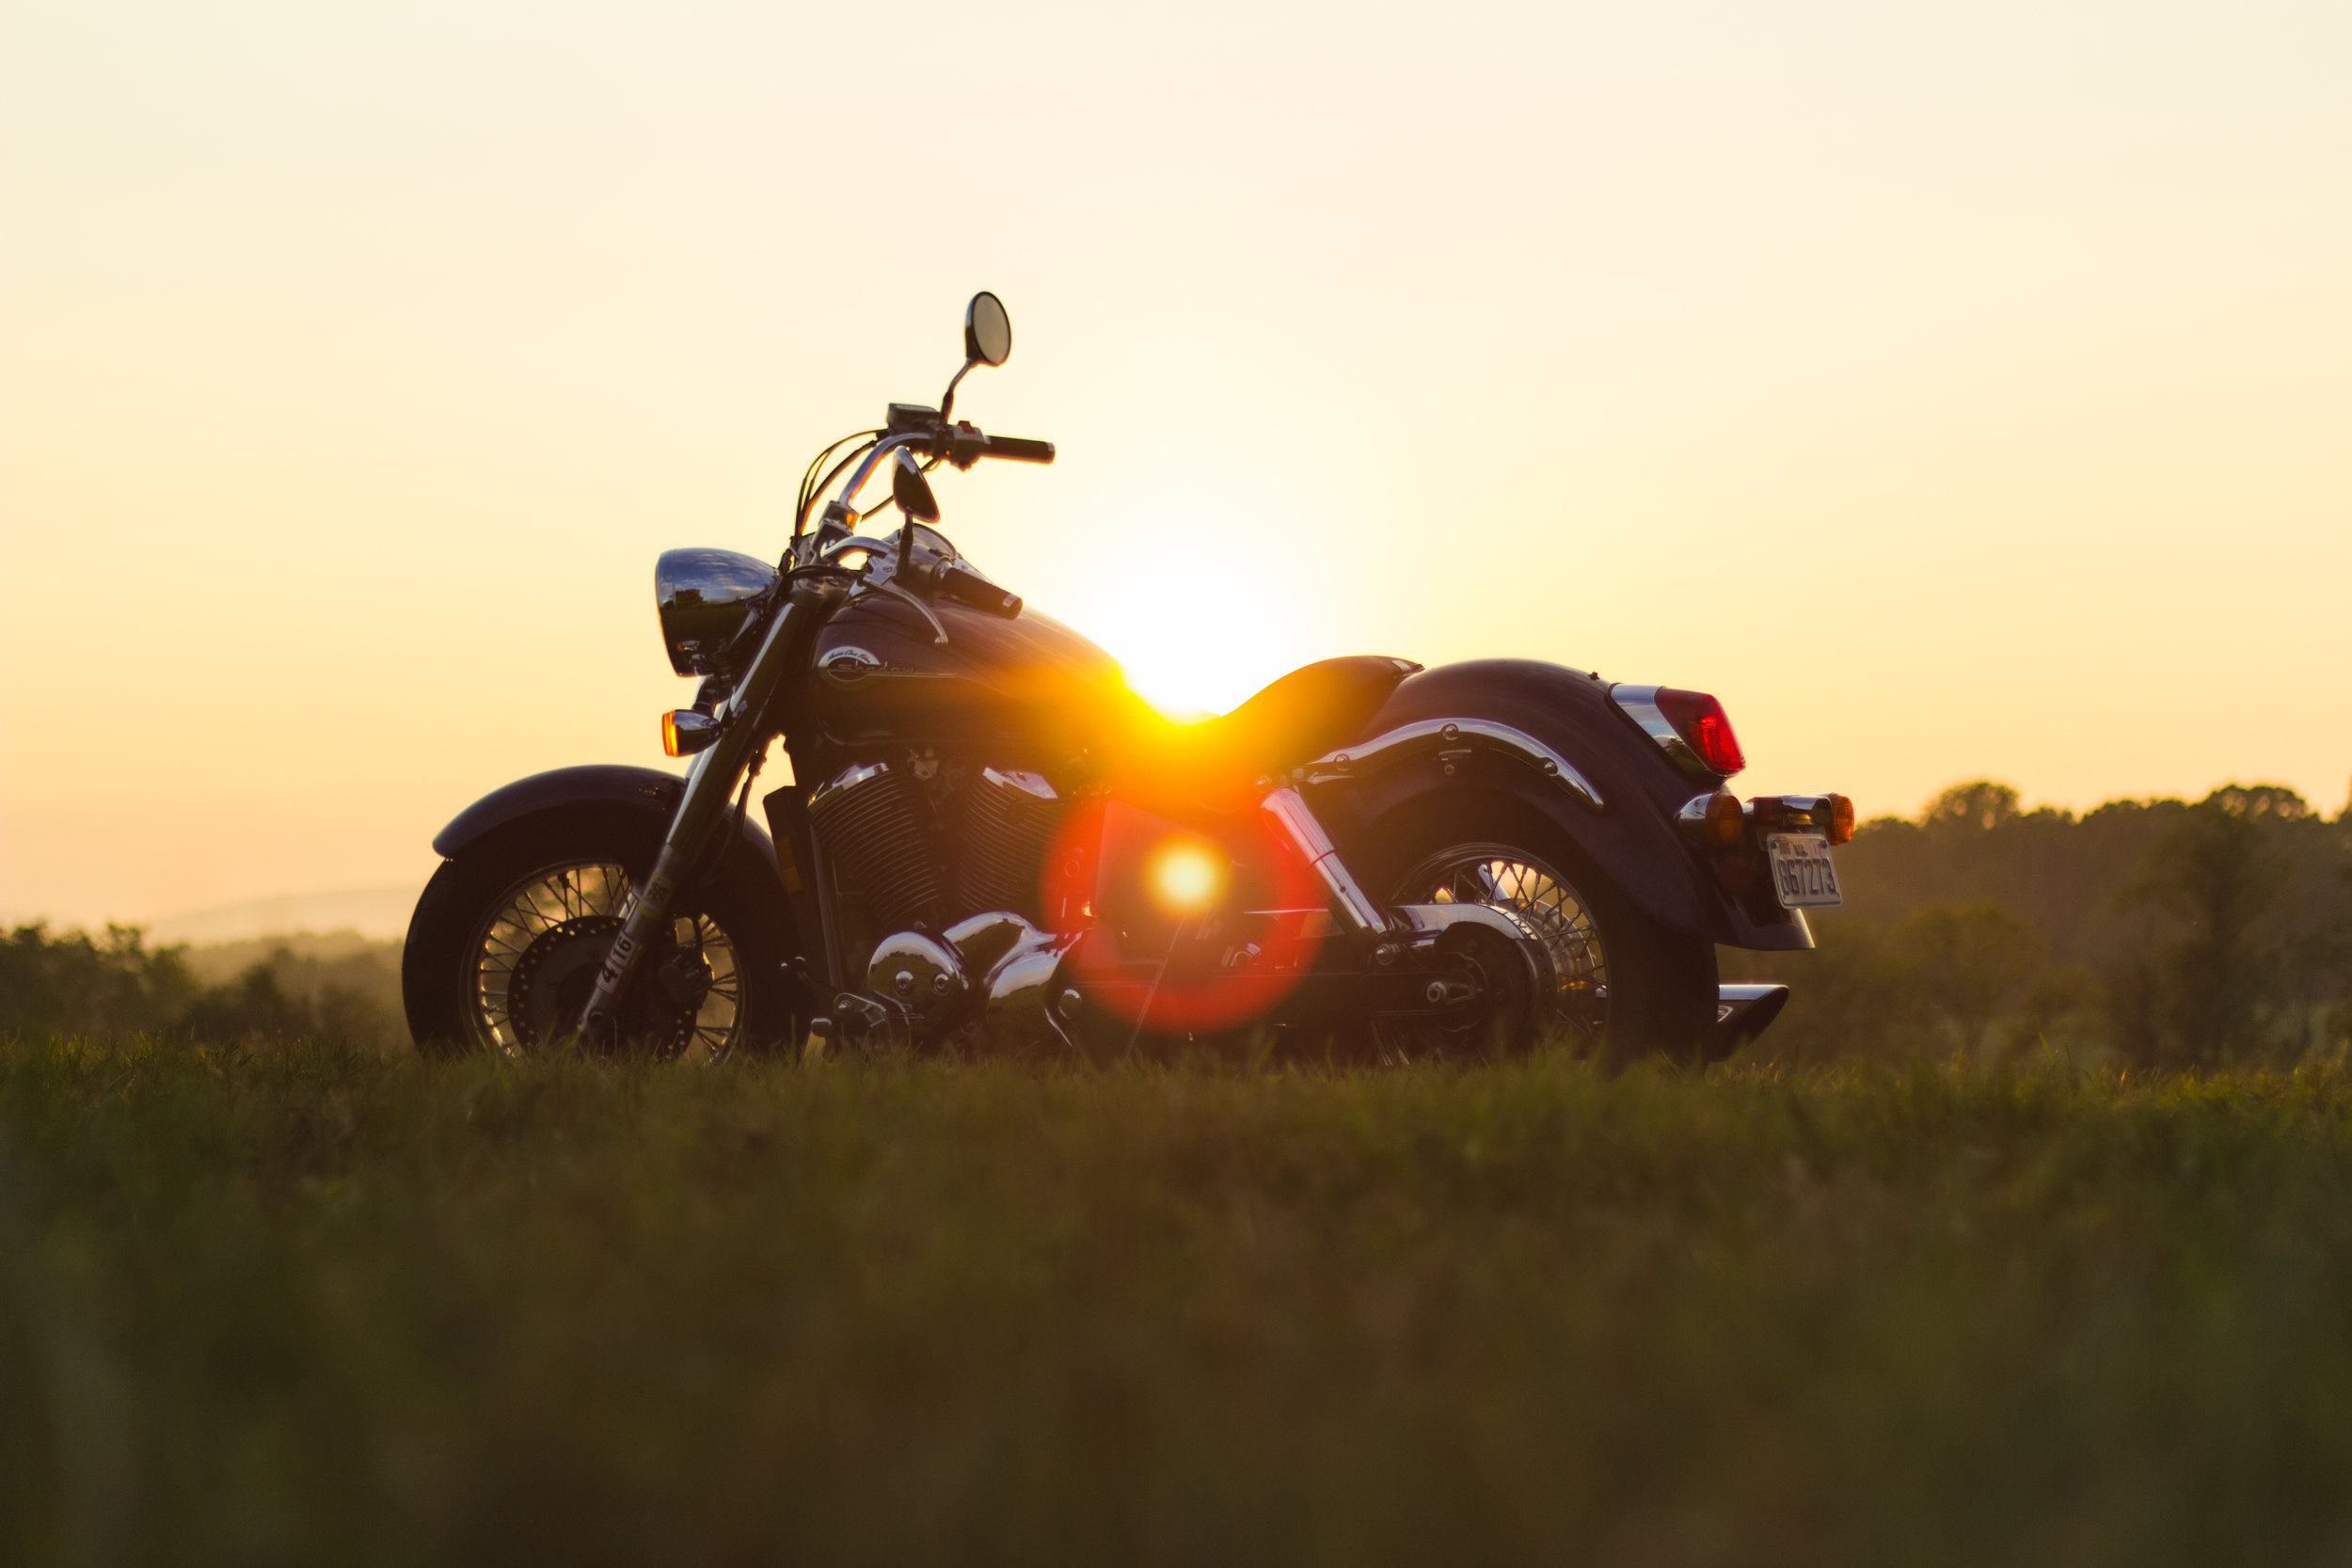 sunset-summer-motorcycle.jpg